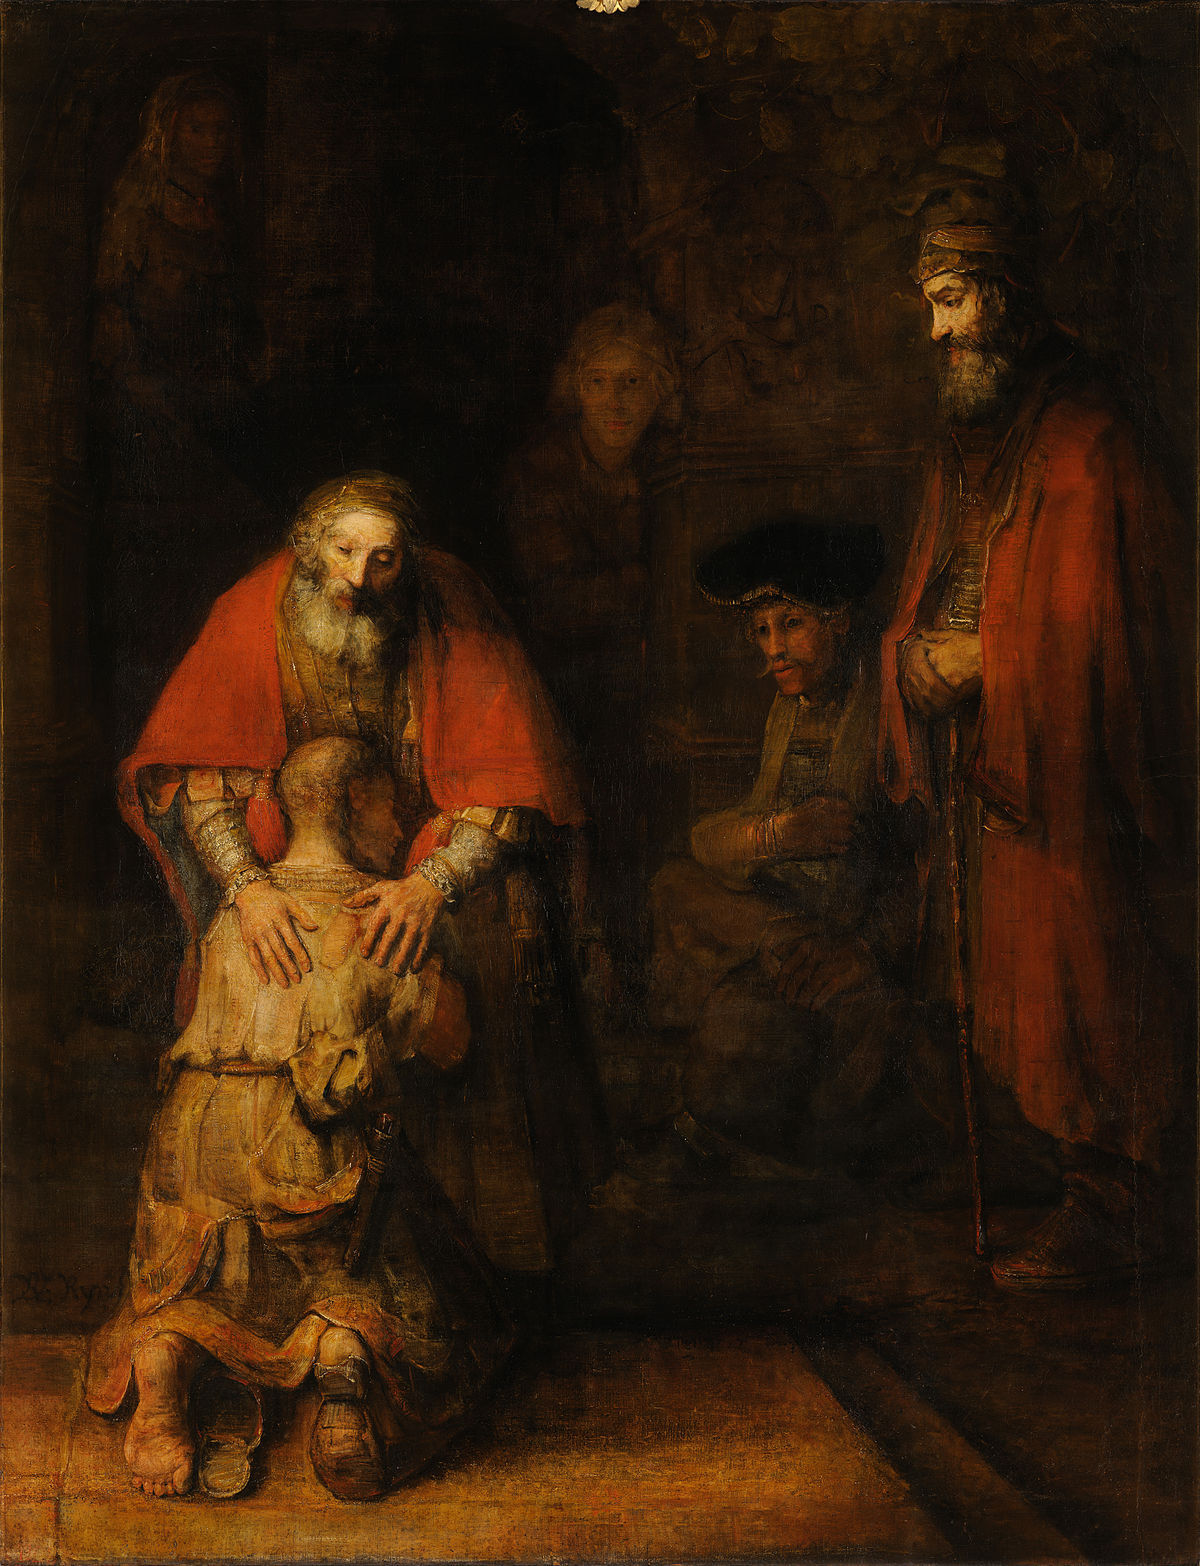 The Prodigal Son by Rembrant